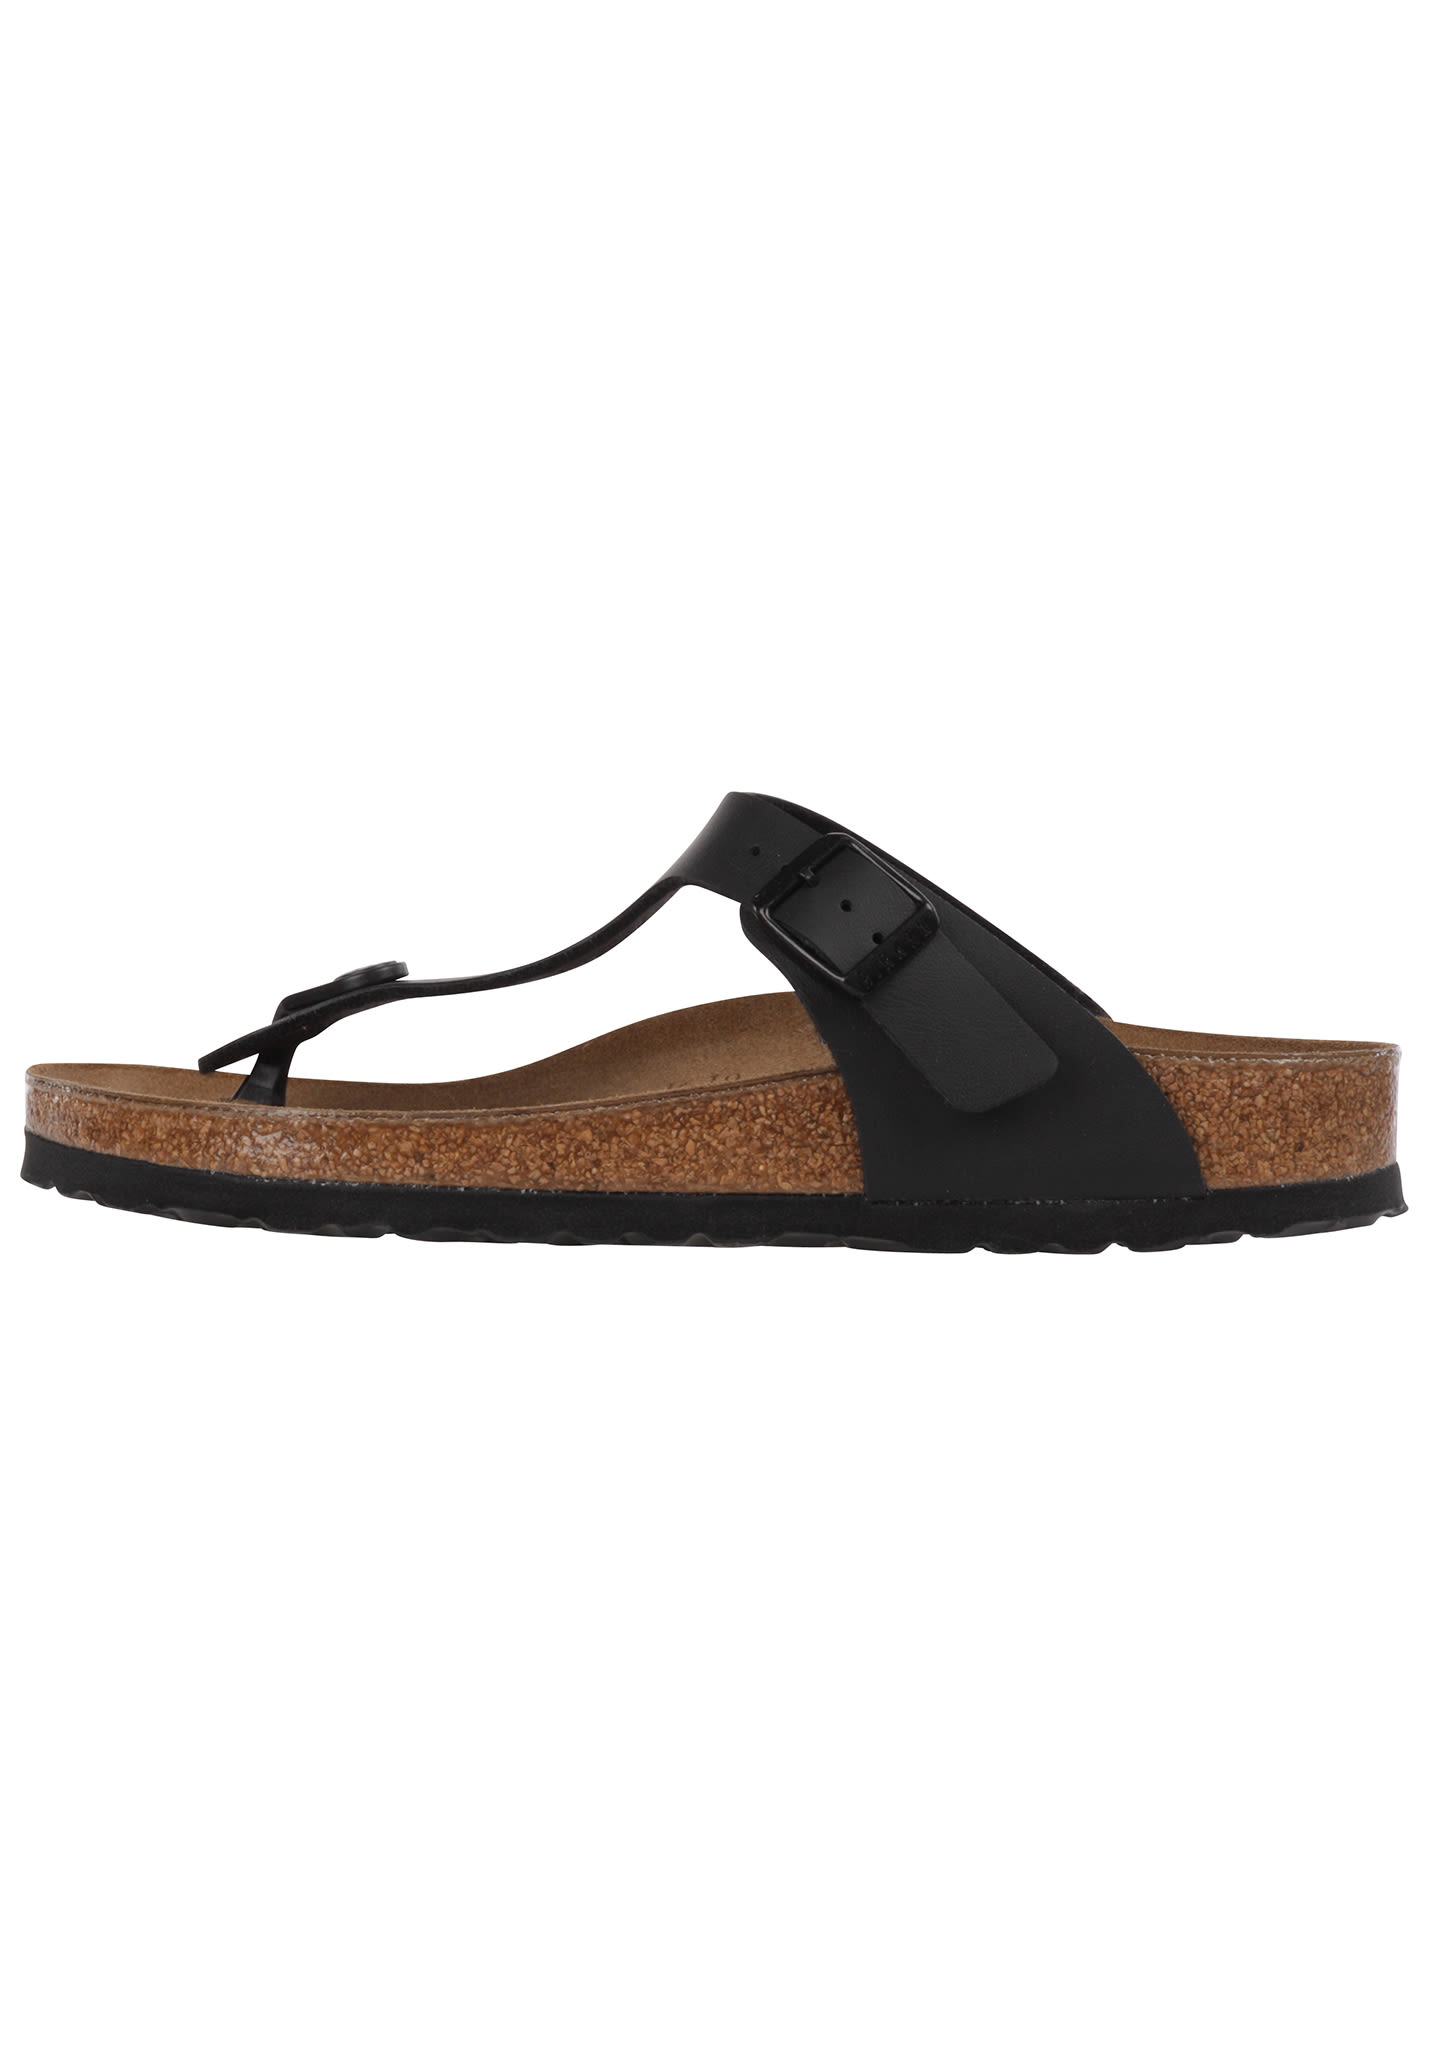 1f09baed15d Birkenstock Gizeh - Sandals for Women - Black - Planet Sports